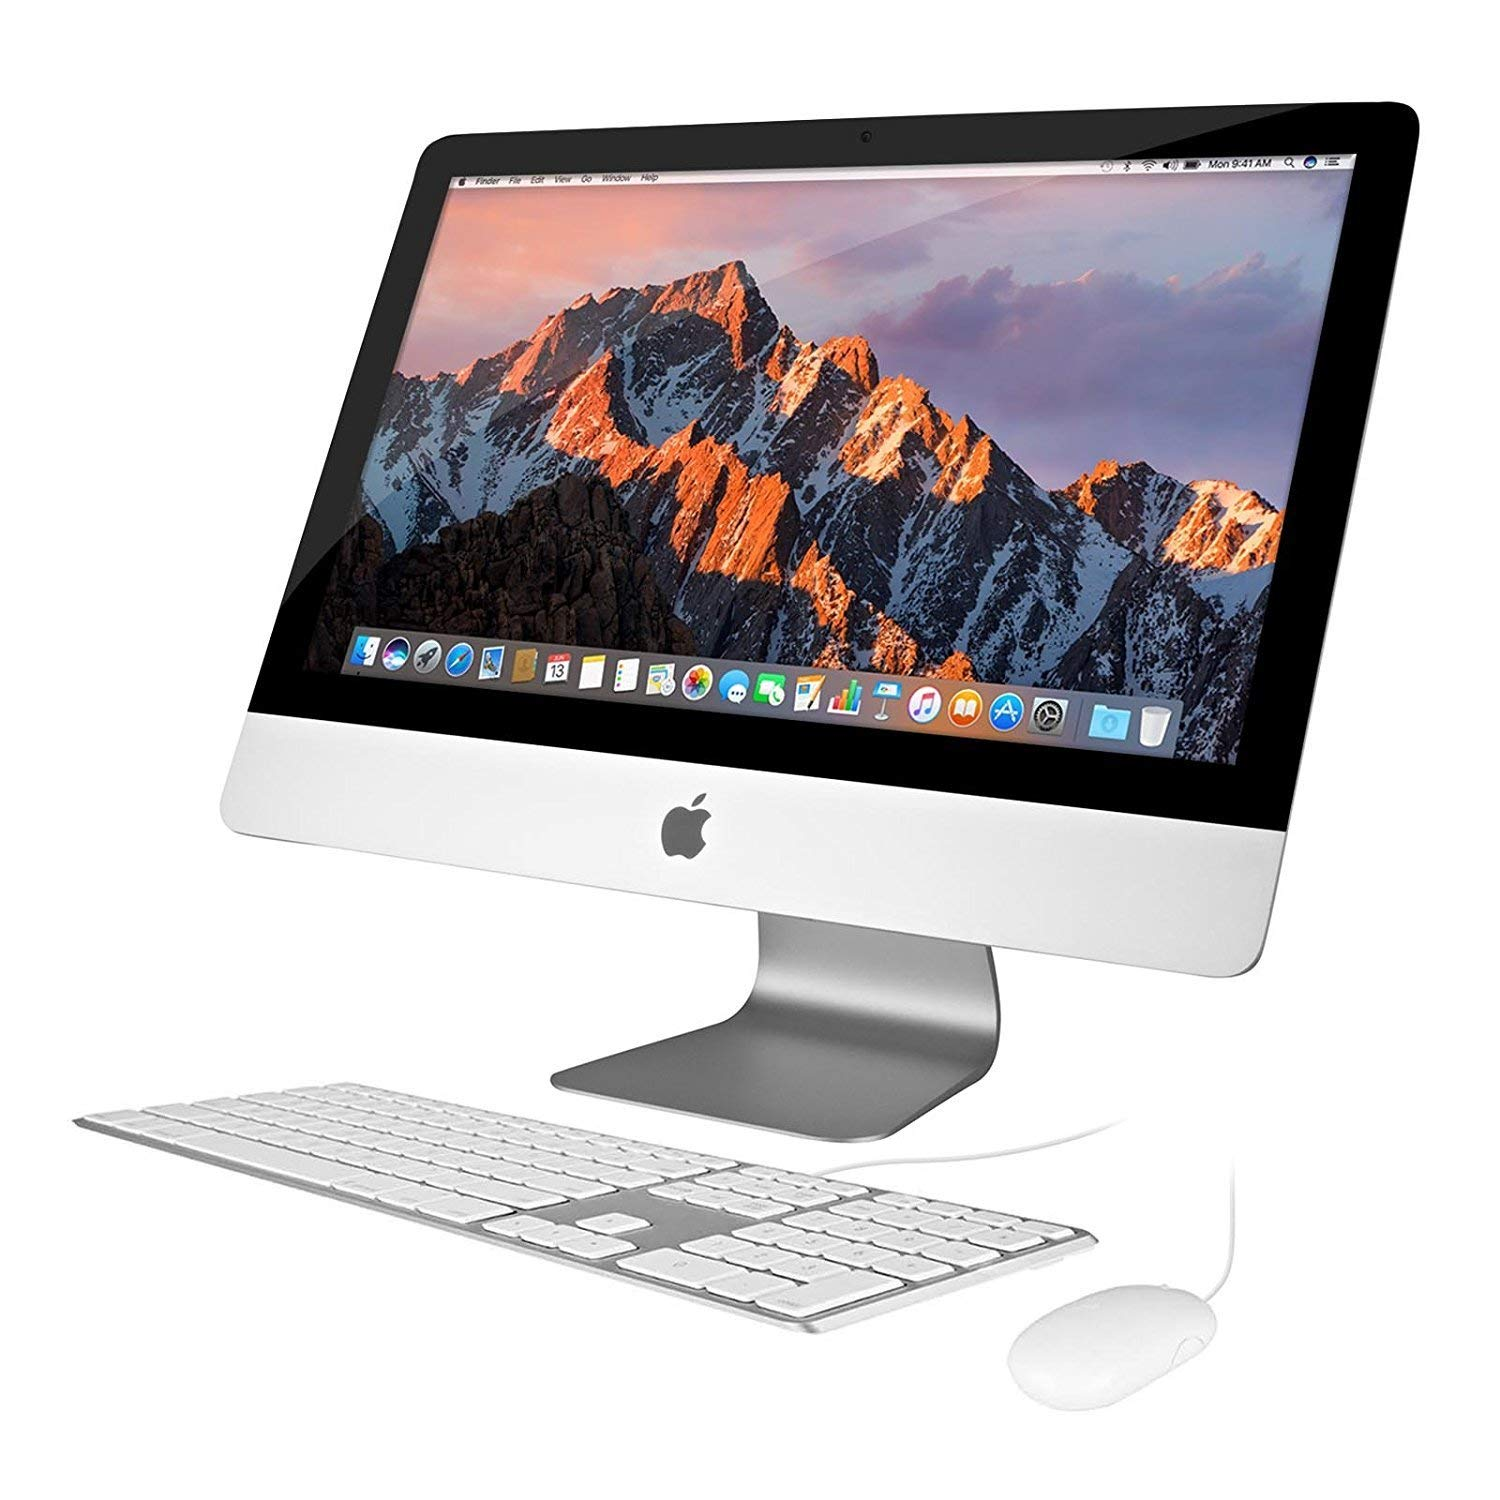 Apple iMac ME087LL/A Intel Core i5 2.9GHz 8GB RAM 256GB SSD (Refurbished)